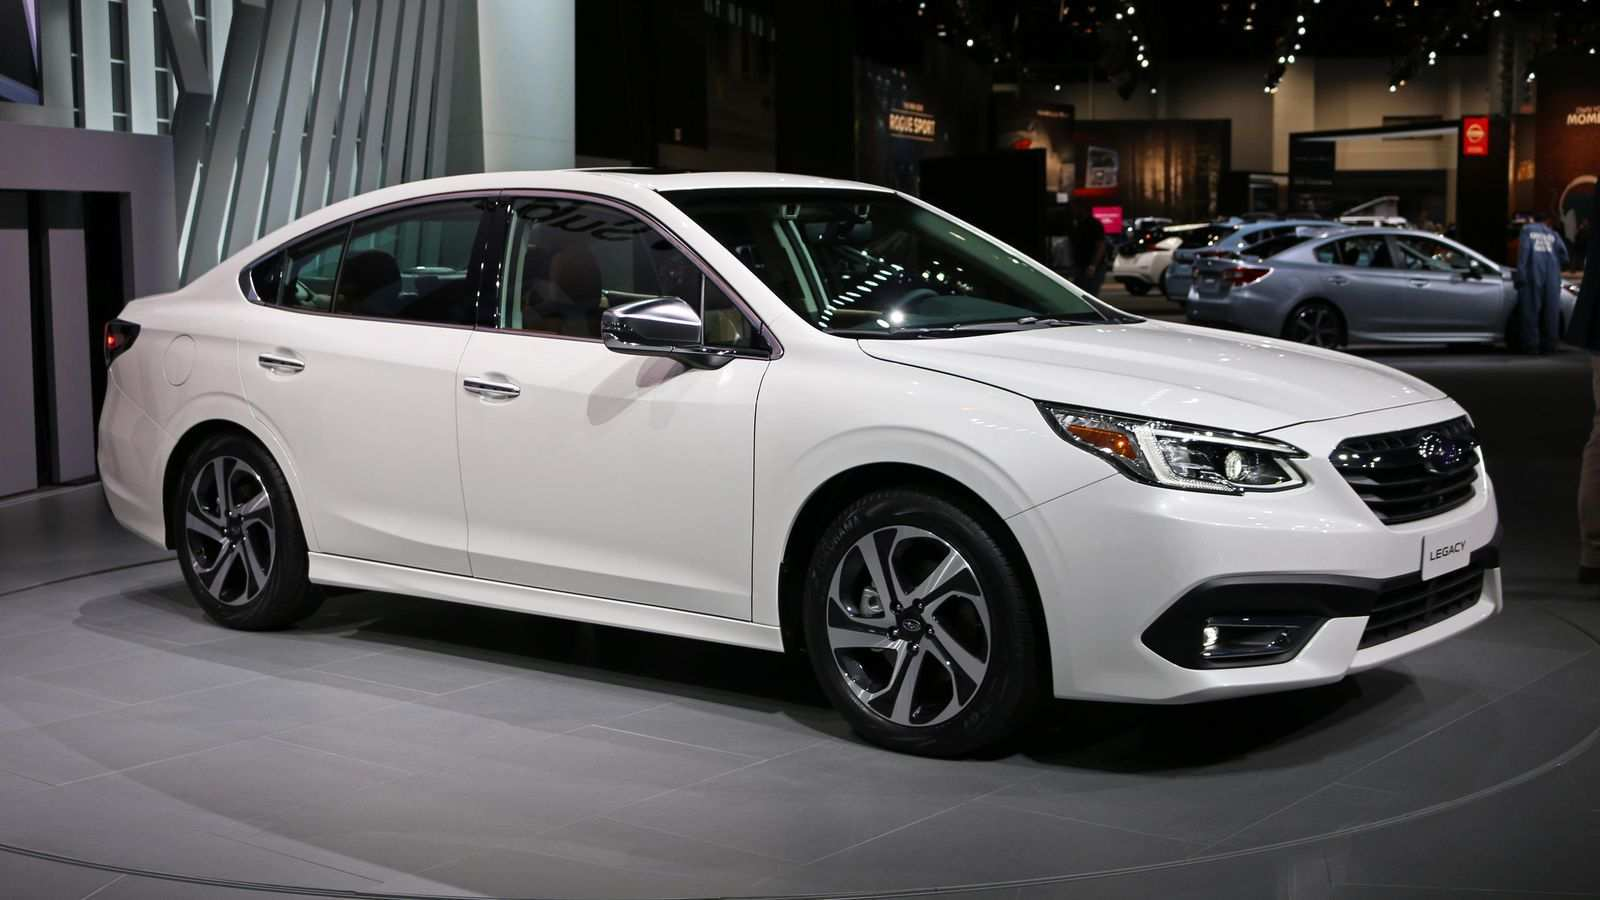 79 The Best Subaru Turbo 2020 Review And Release Date